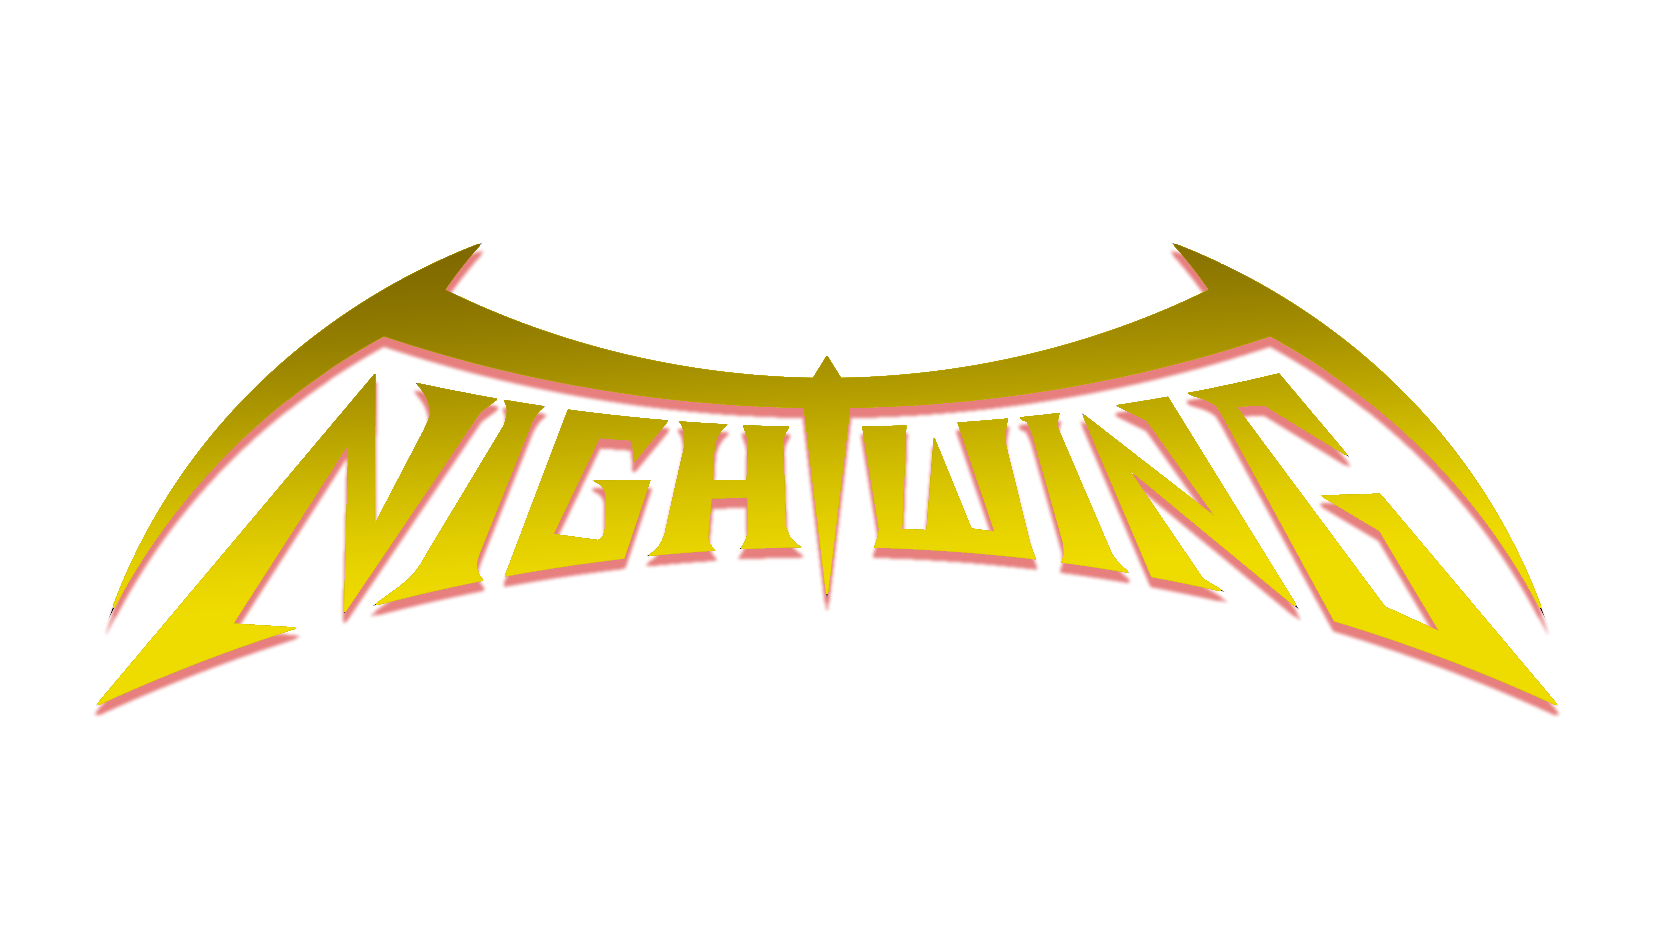 nightwing text png